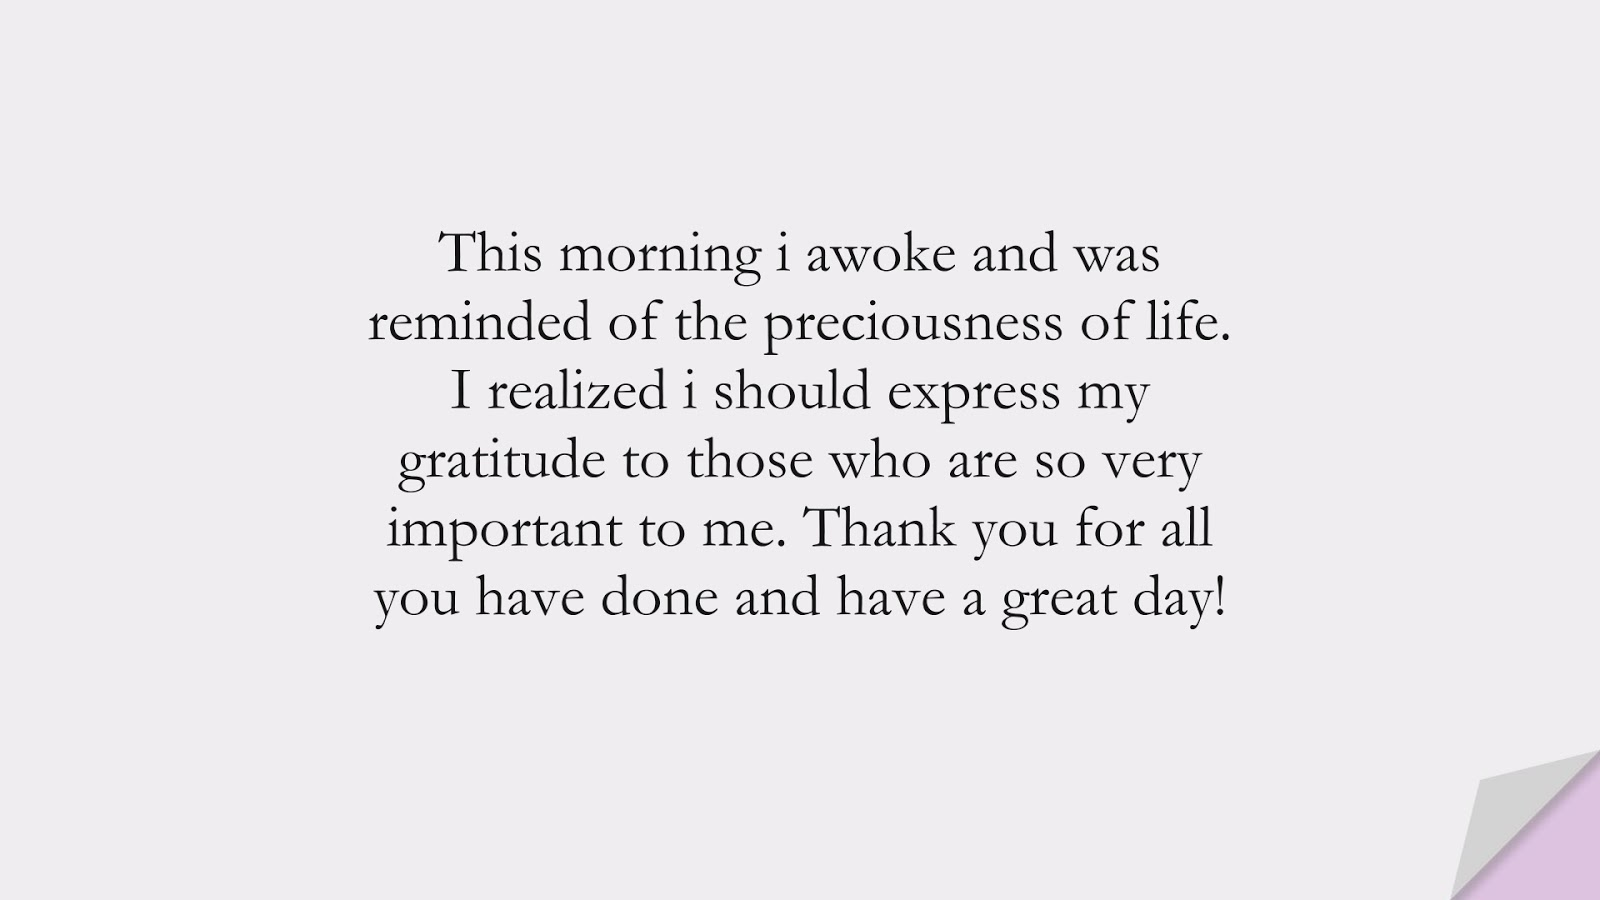 This morning i awoke and was reminded of the preciousness of life. I realized i should express my gratitude to those who are so very important to me. Thank you for all you have done and have a great day!FALSE